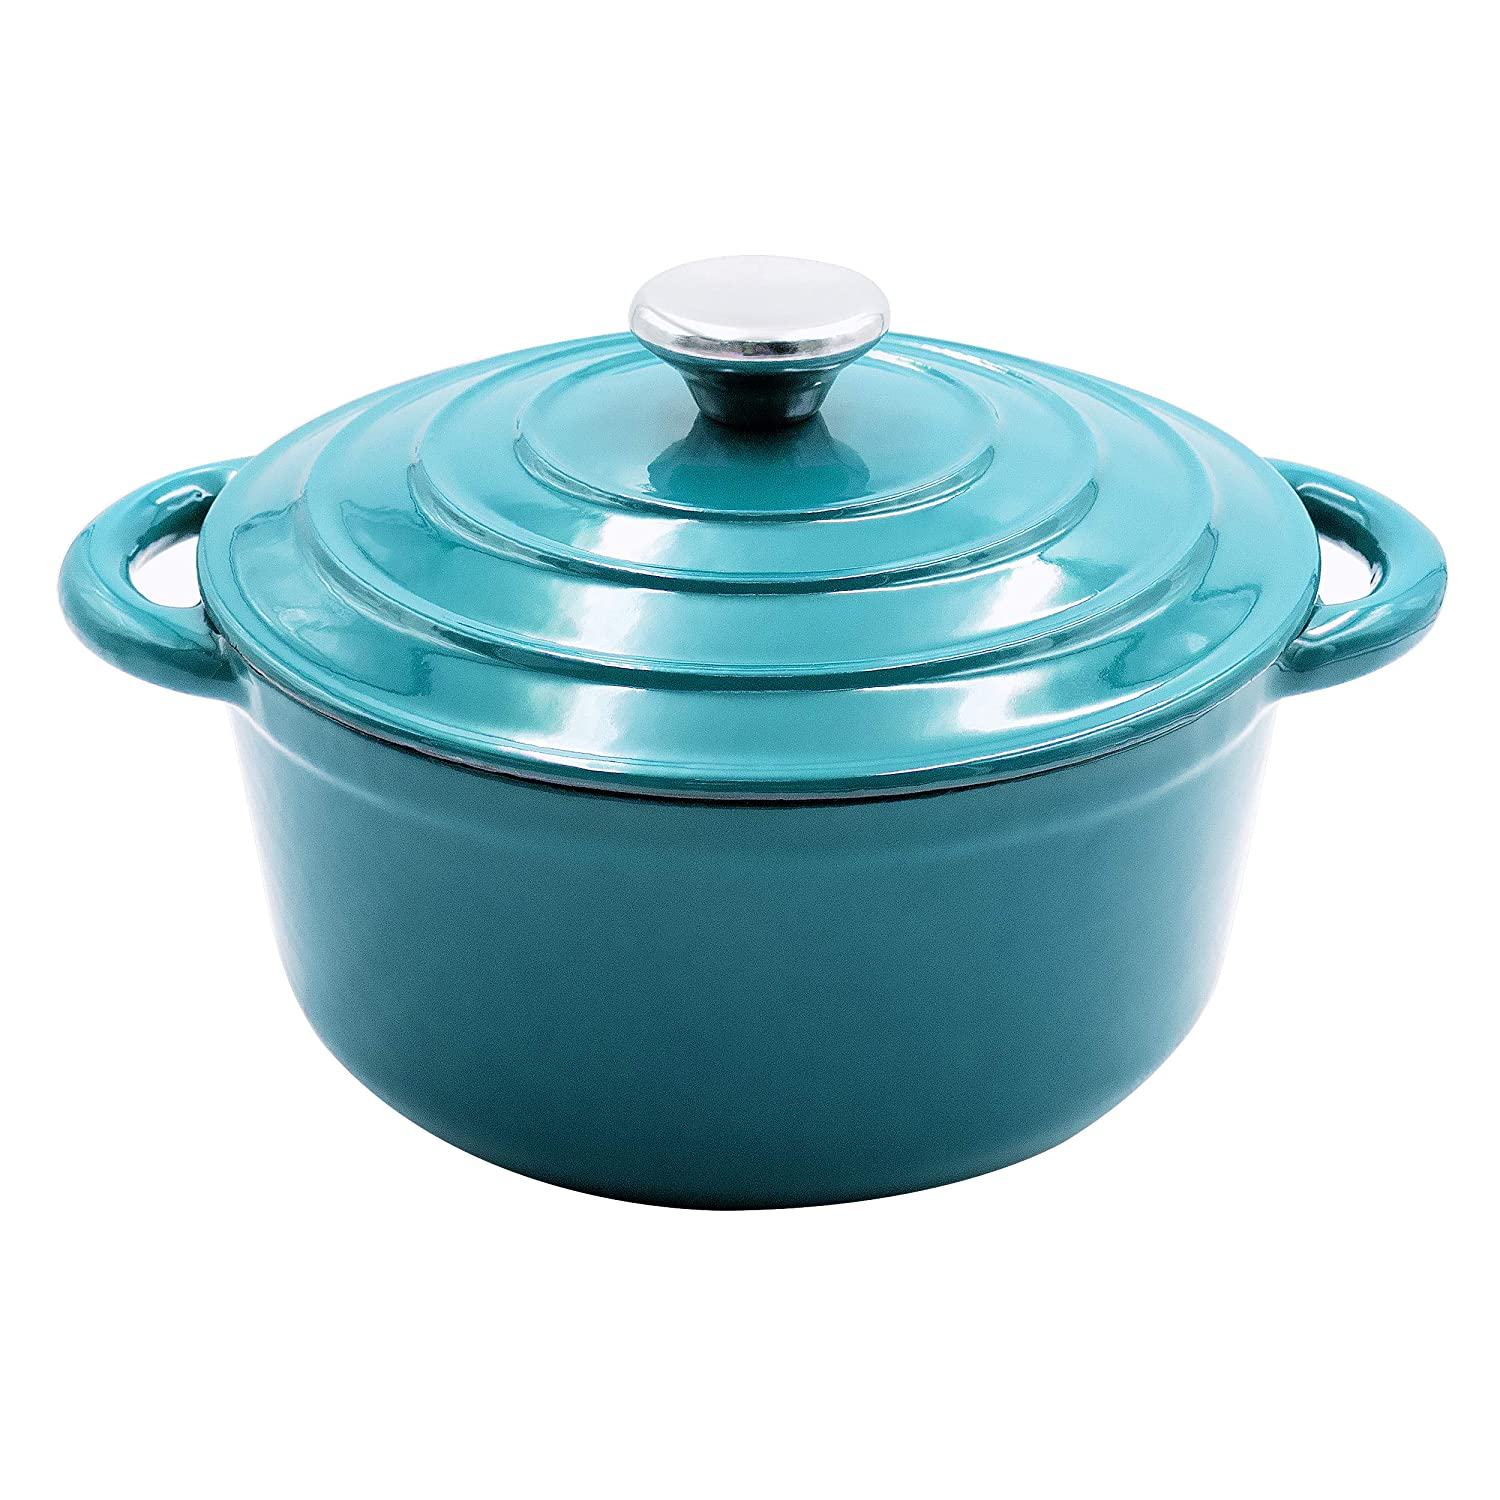 Enameled Cast Iron Dutch Oven - 3-Quart Turquoise Blue Round Ceramic Coated Cookware French Oven with Self Basting Lid by AIDEA